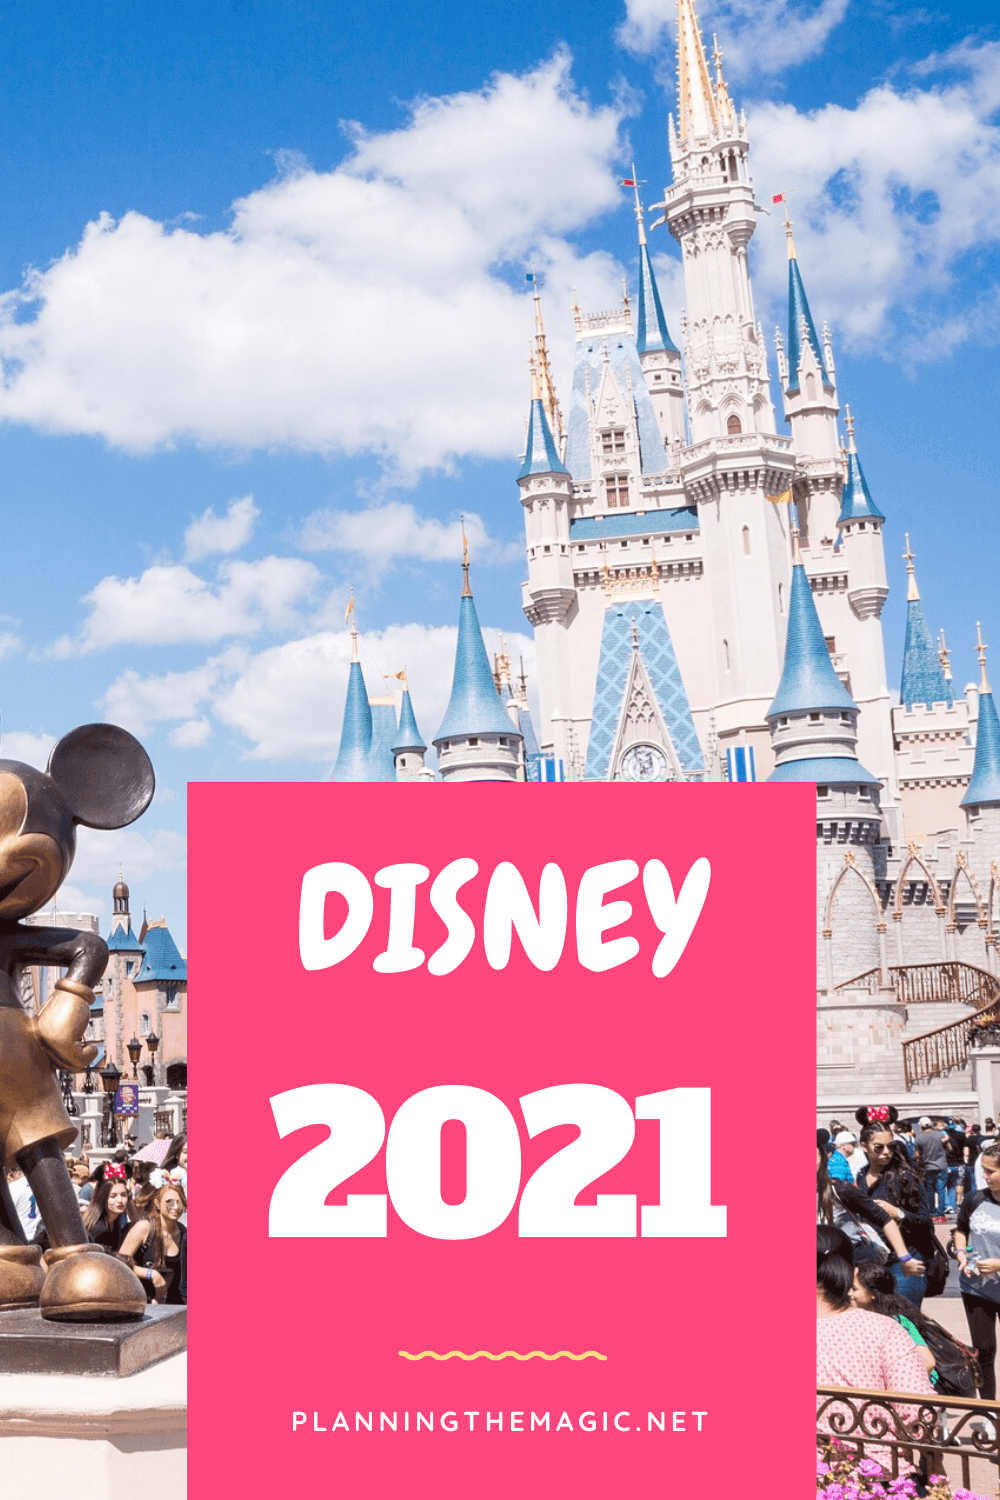 Disney 2021 – Everything You Need To Know - Planning The Magic